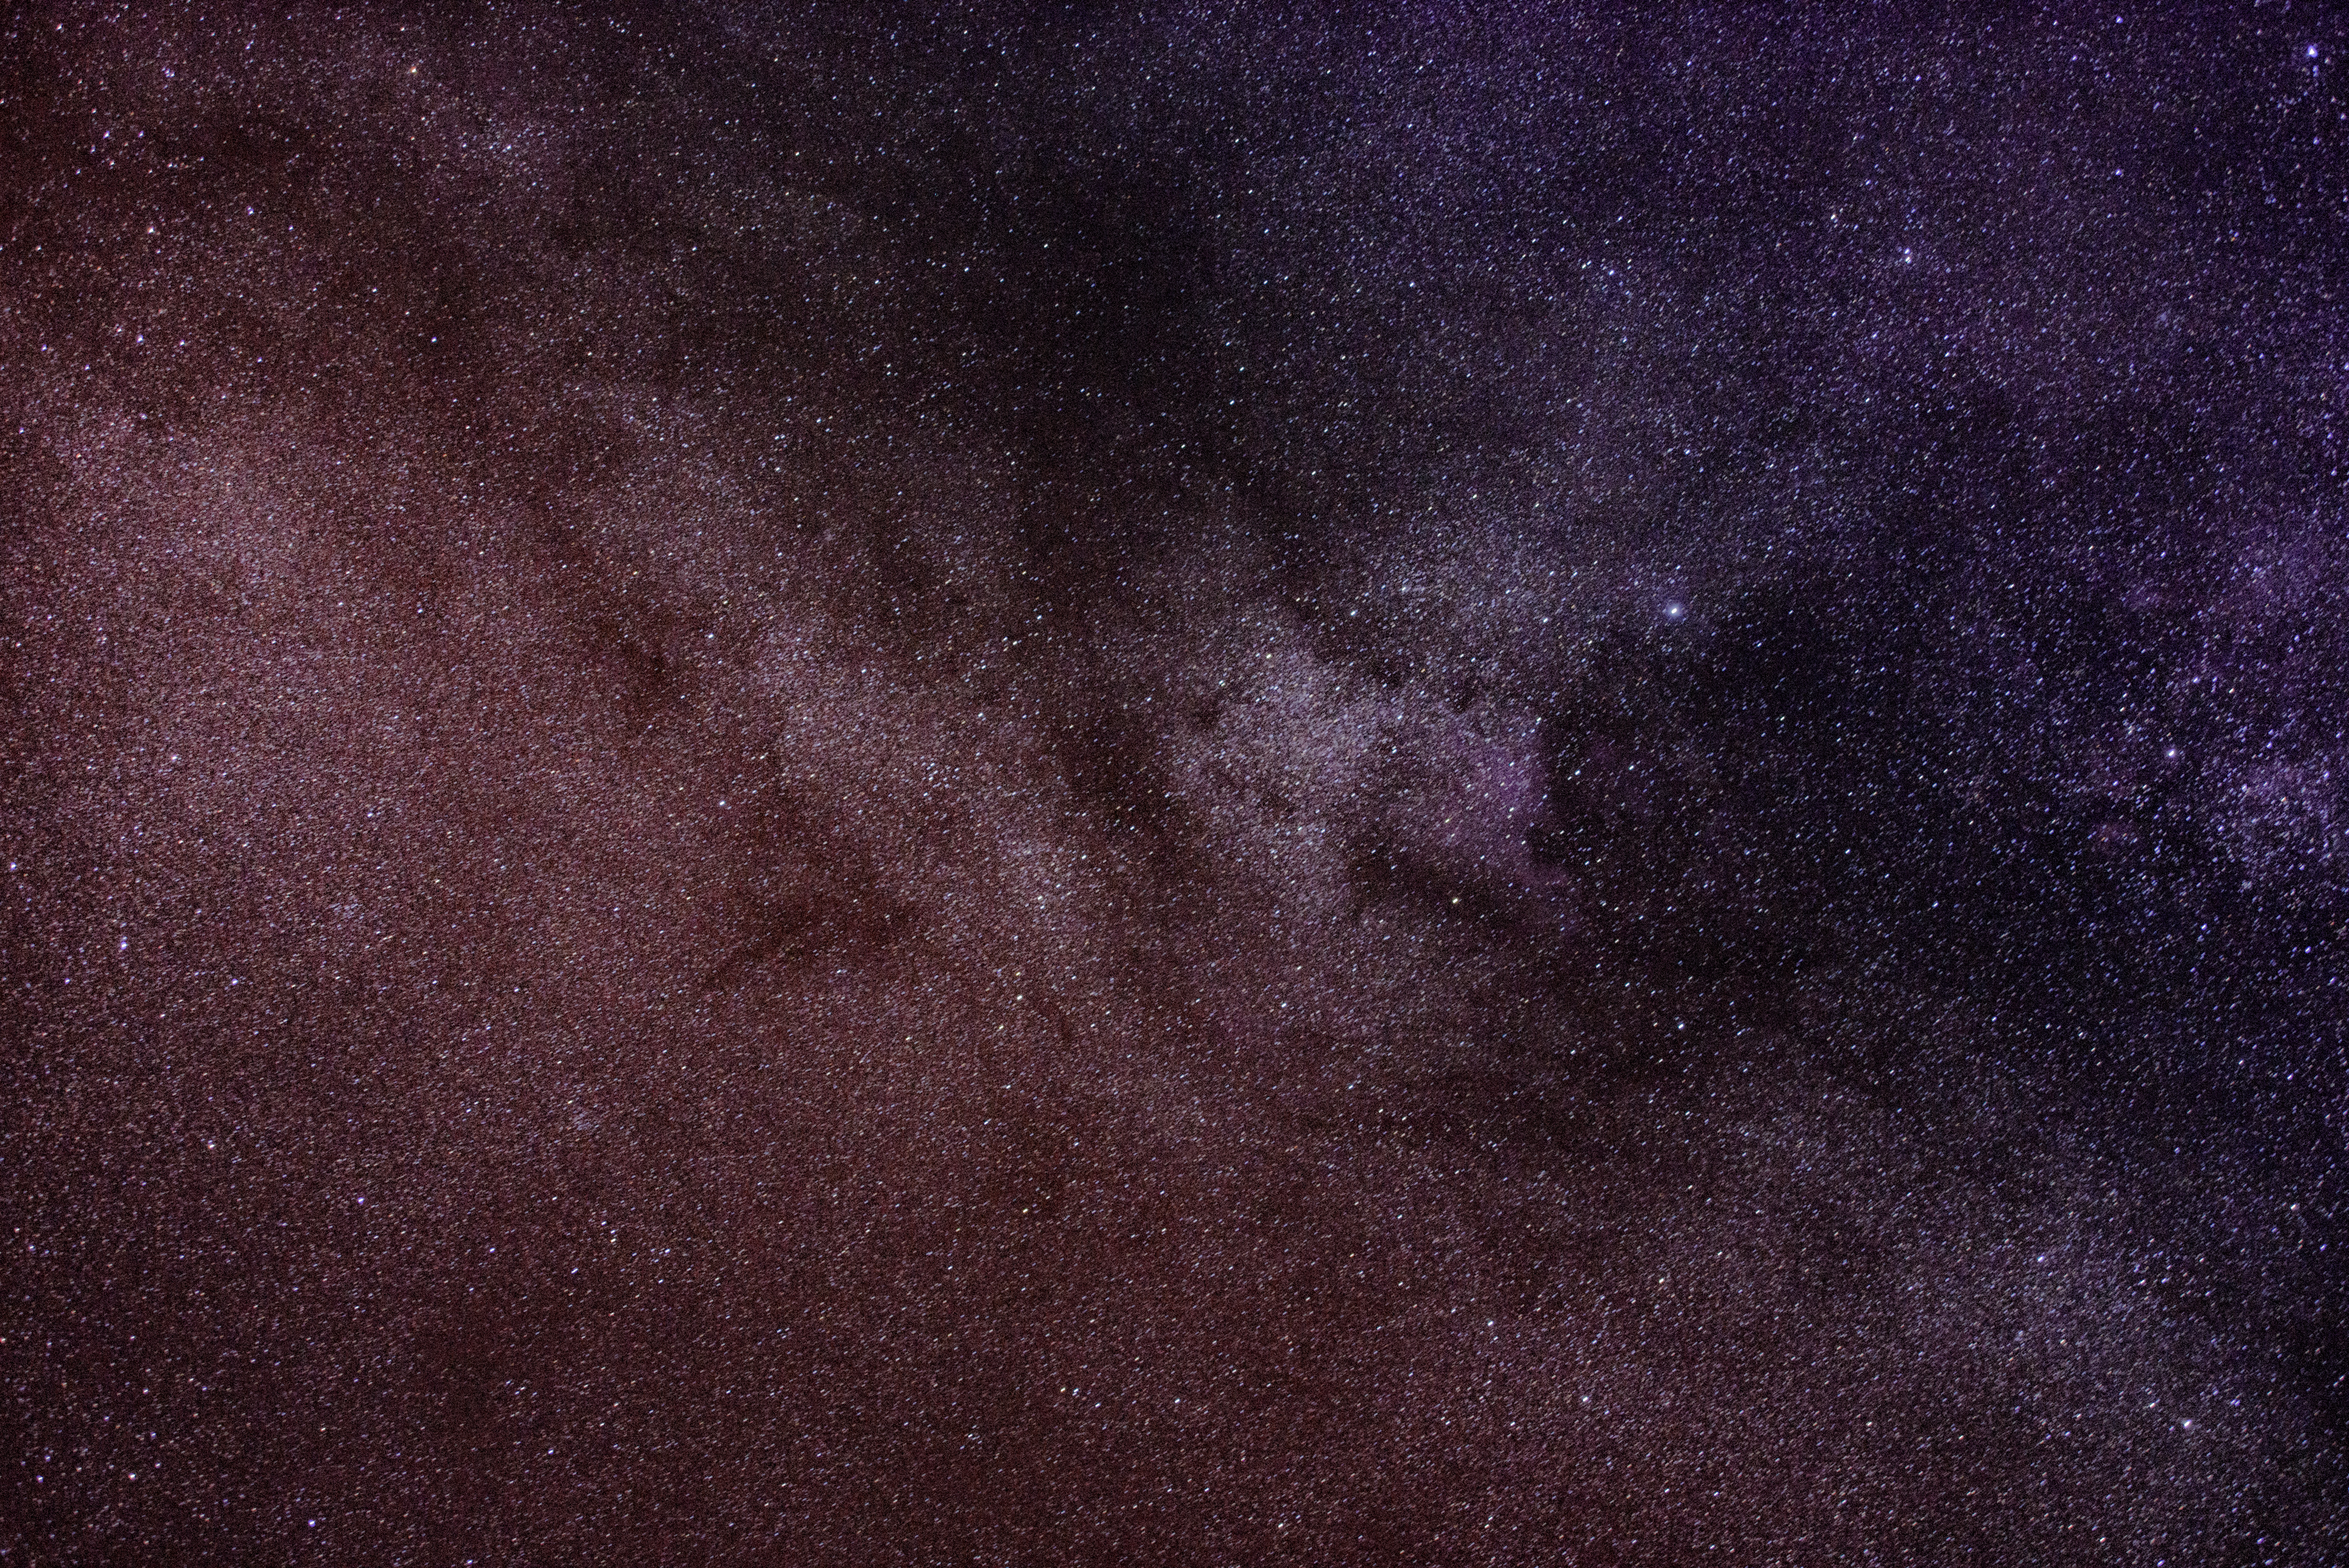 Galaxy Wallpaper Pictures Download Free Images on Unsplash